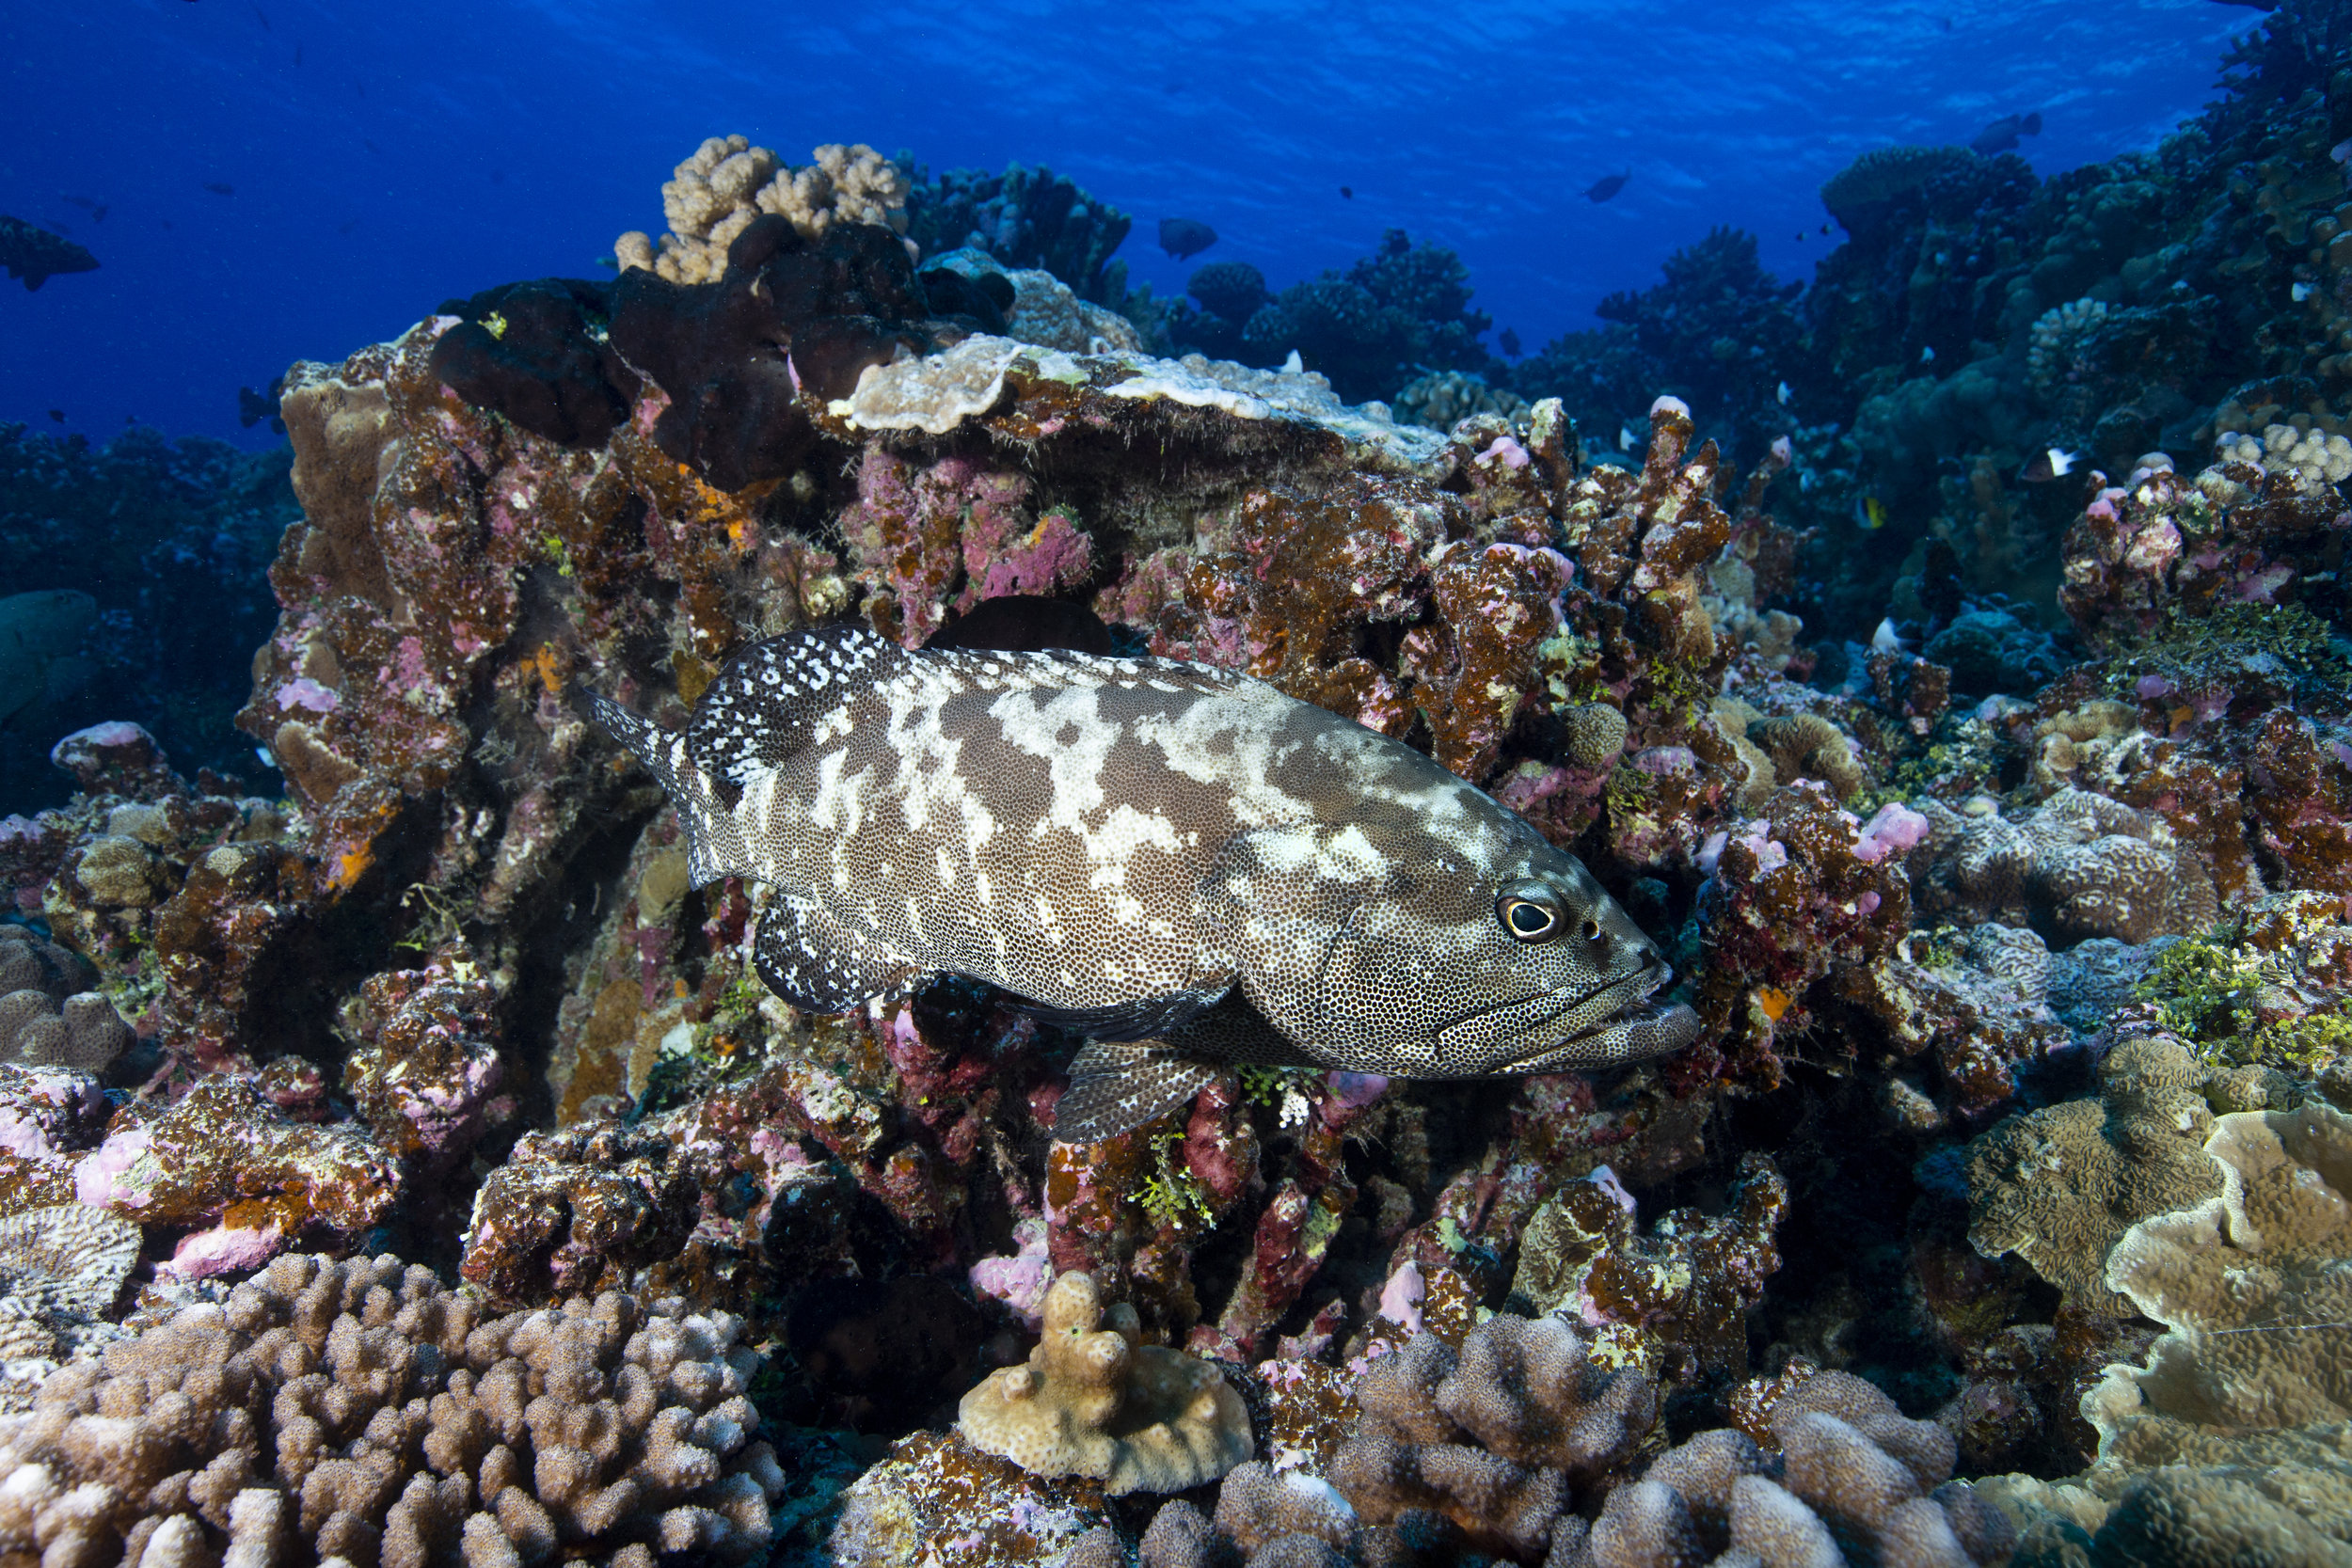 GROUPER SPAWNING, FAKARAVA CREDIT: RICK MISKIV / CORAL REEF IMAGE BANK